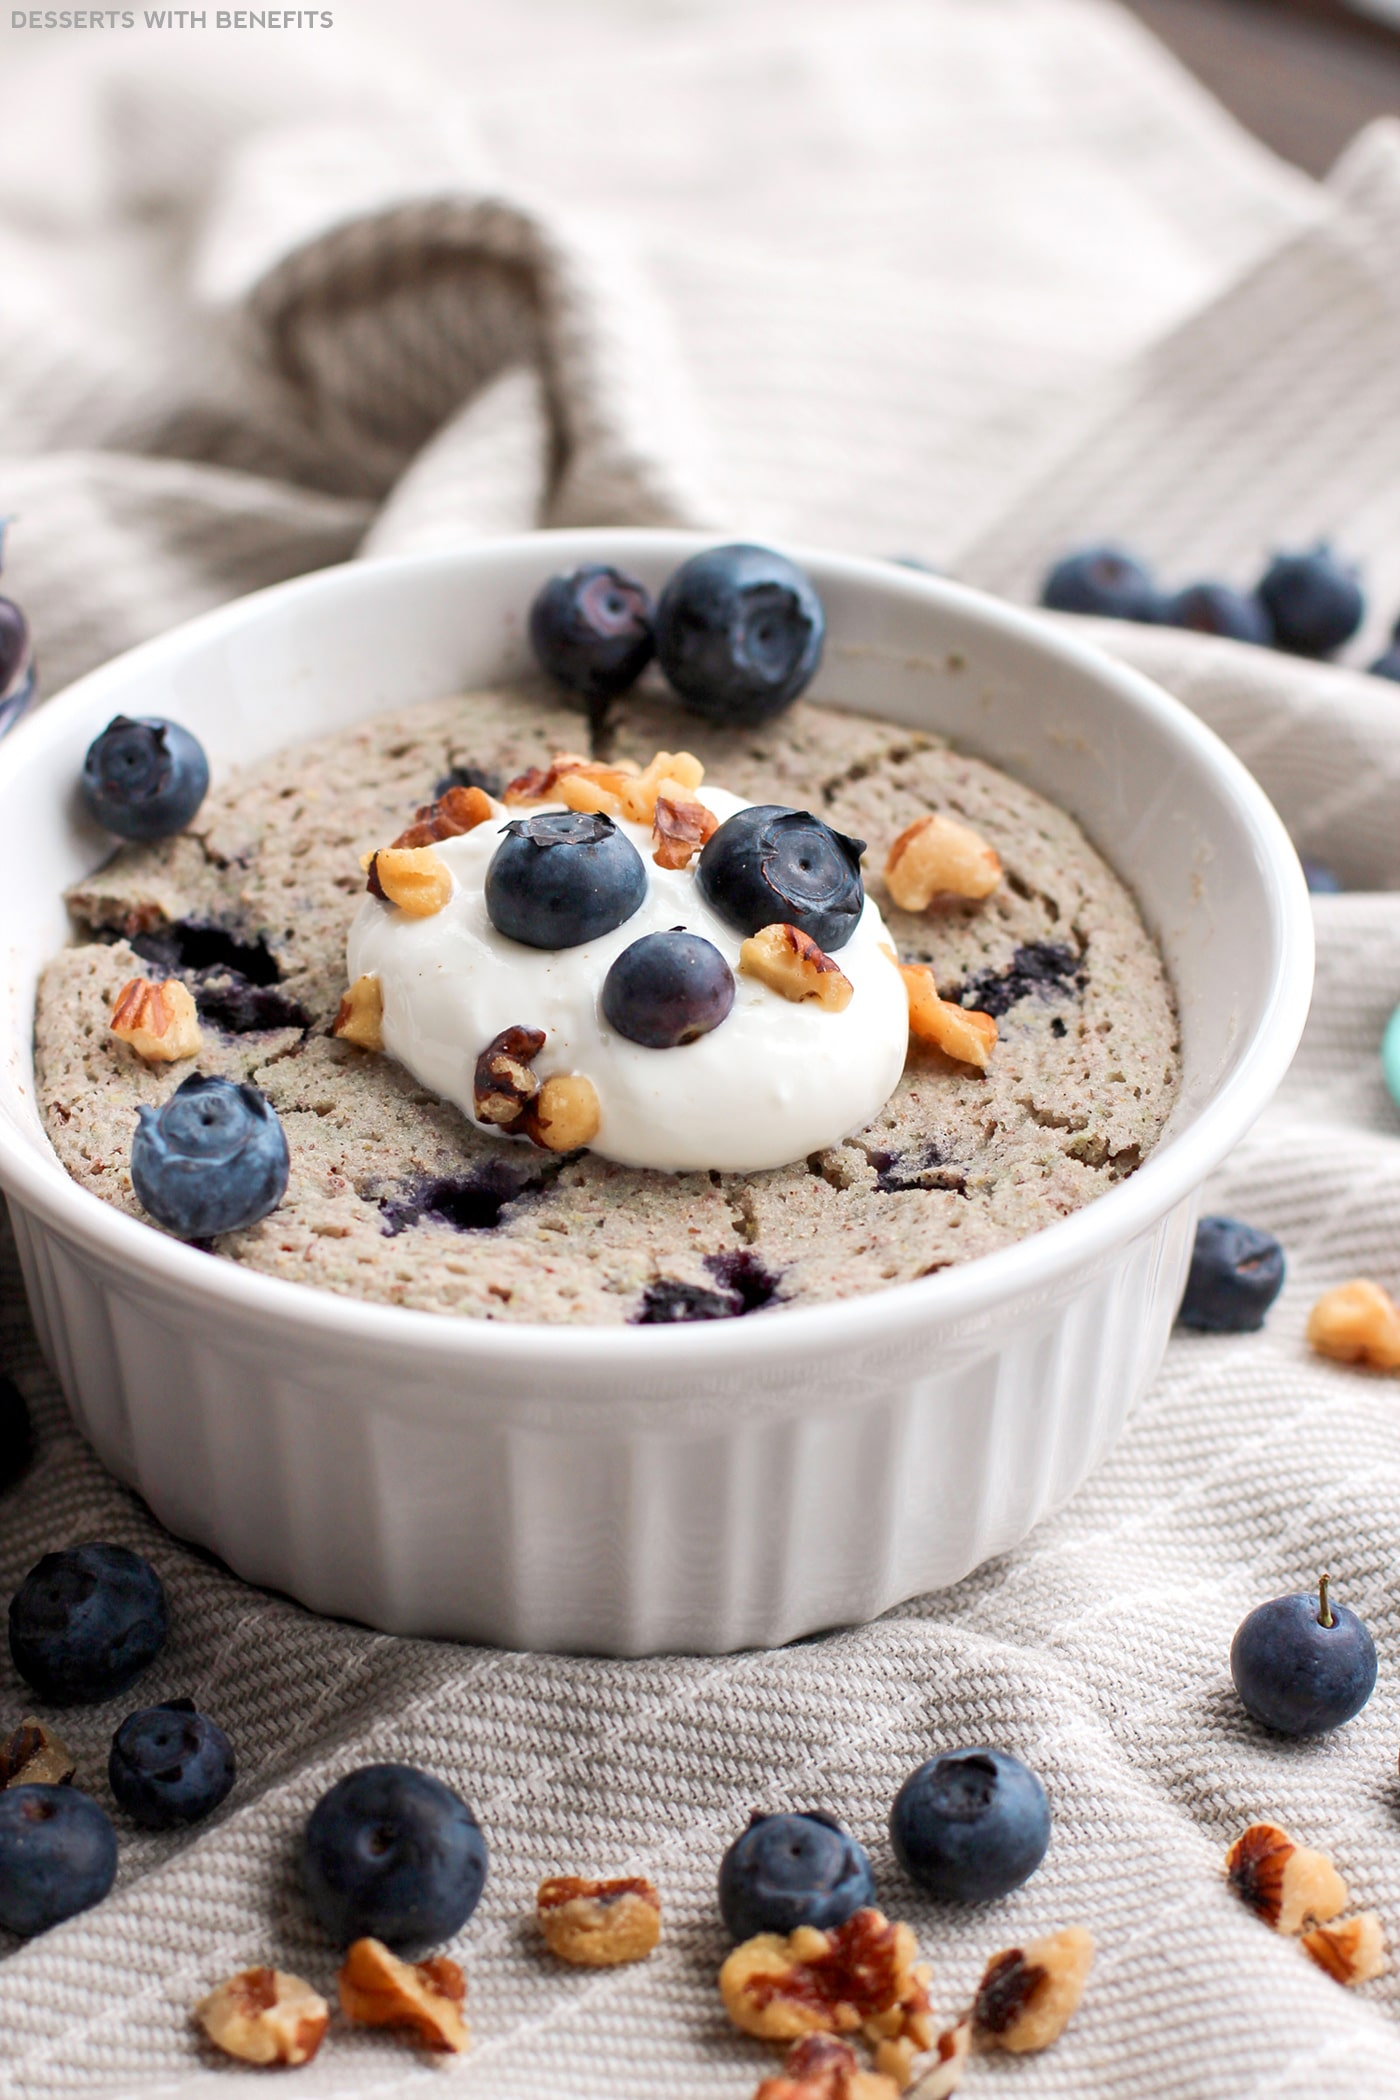 Healthy Single-Serving Blueberry Microwave Muffin (refined sugar free, low fat, high fiber, gluten free, vegan) - Healthy Dessert Recipes at Desserts with Benefits